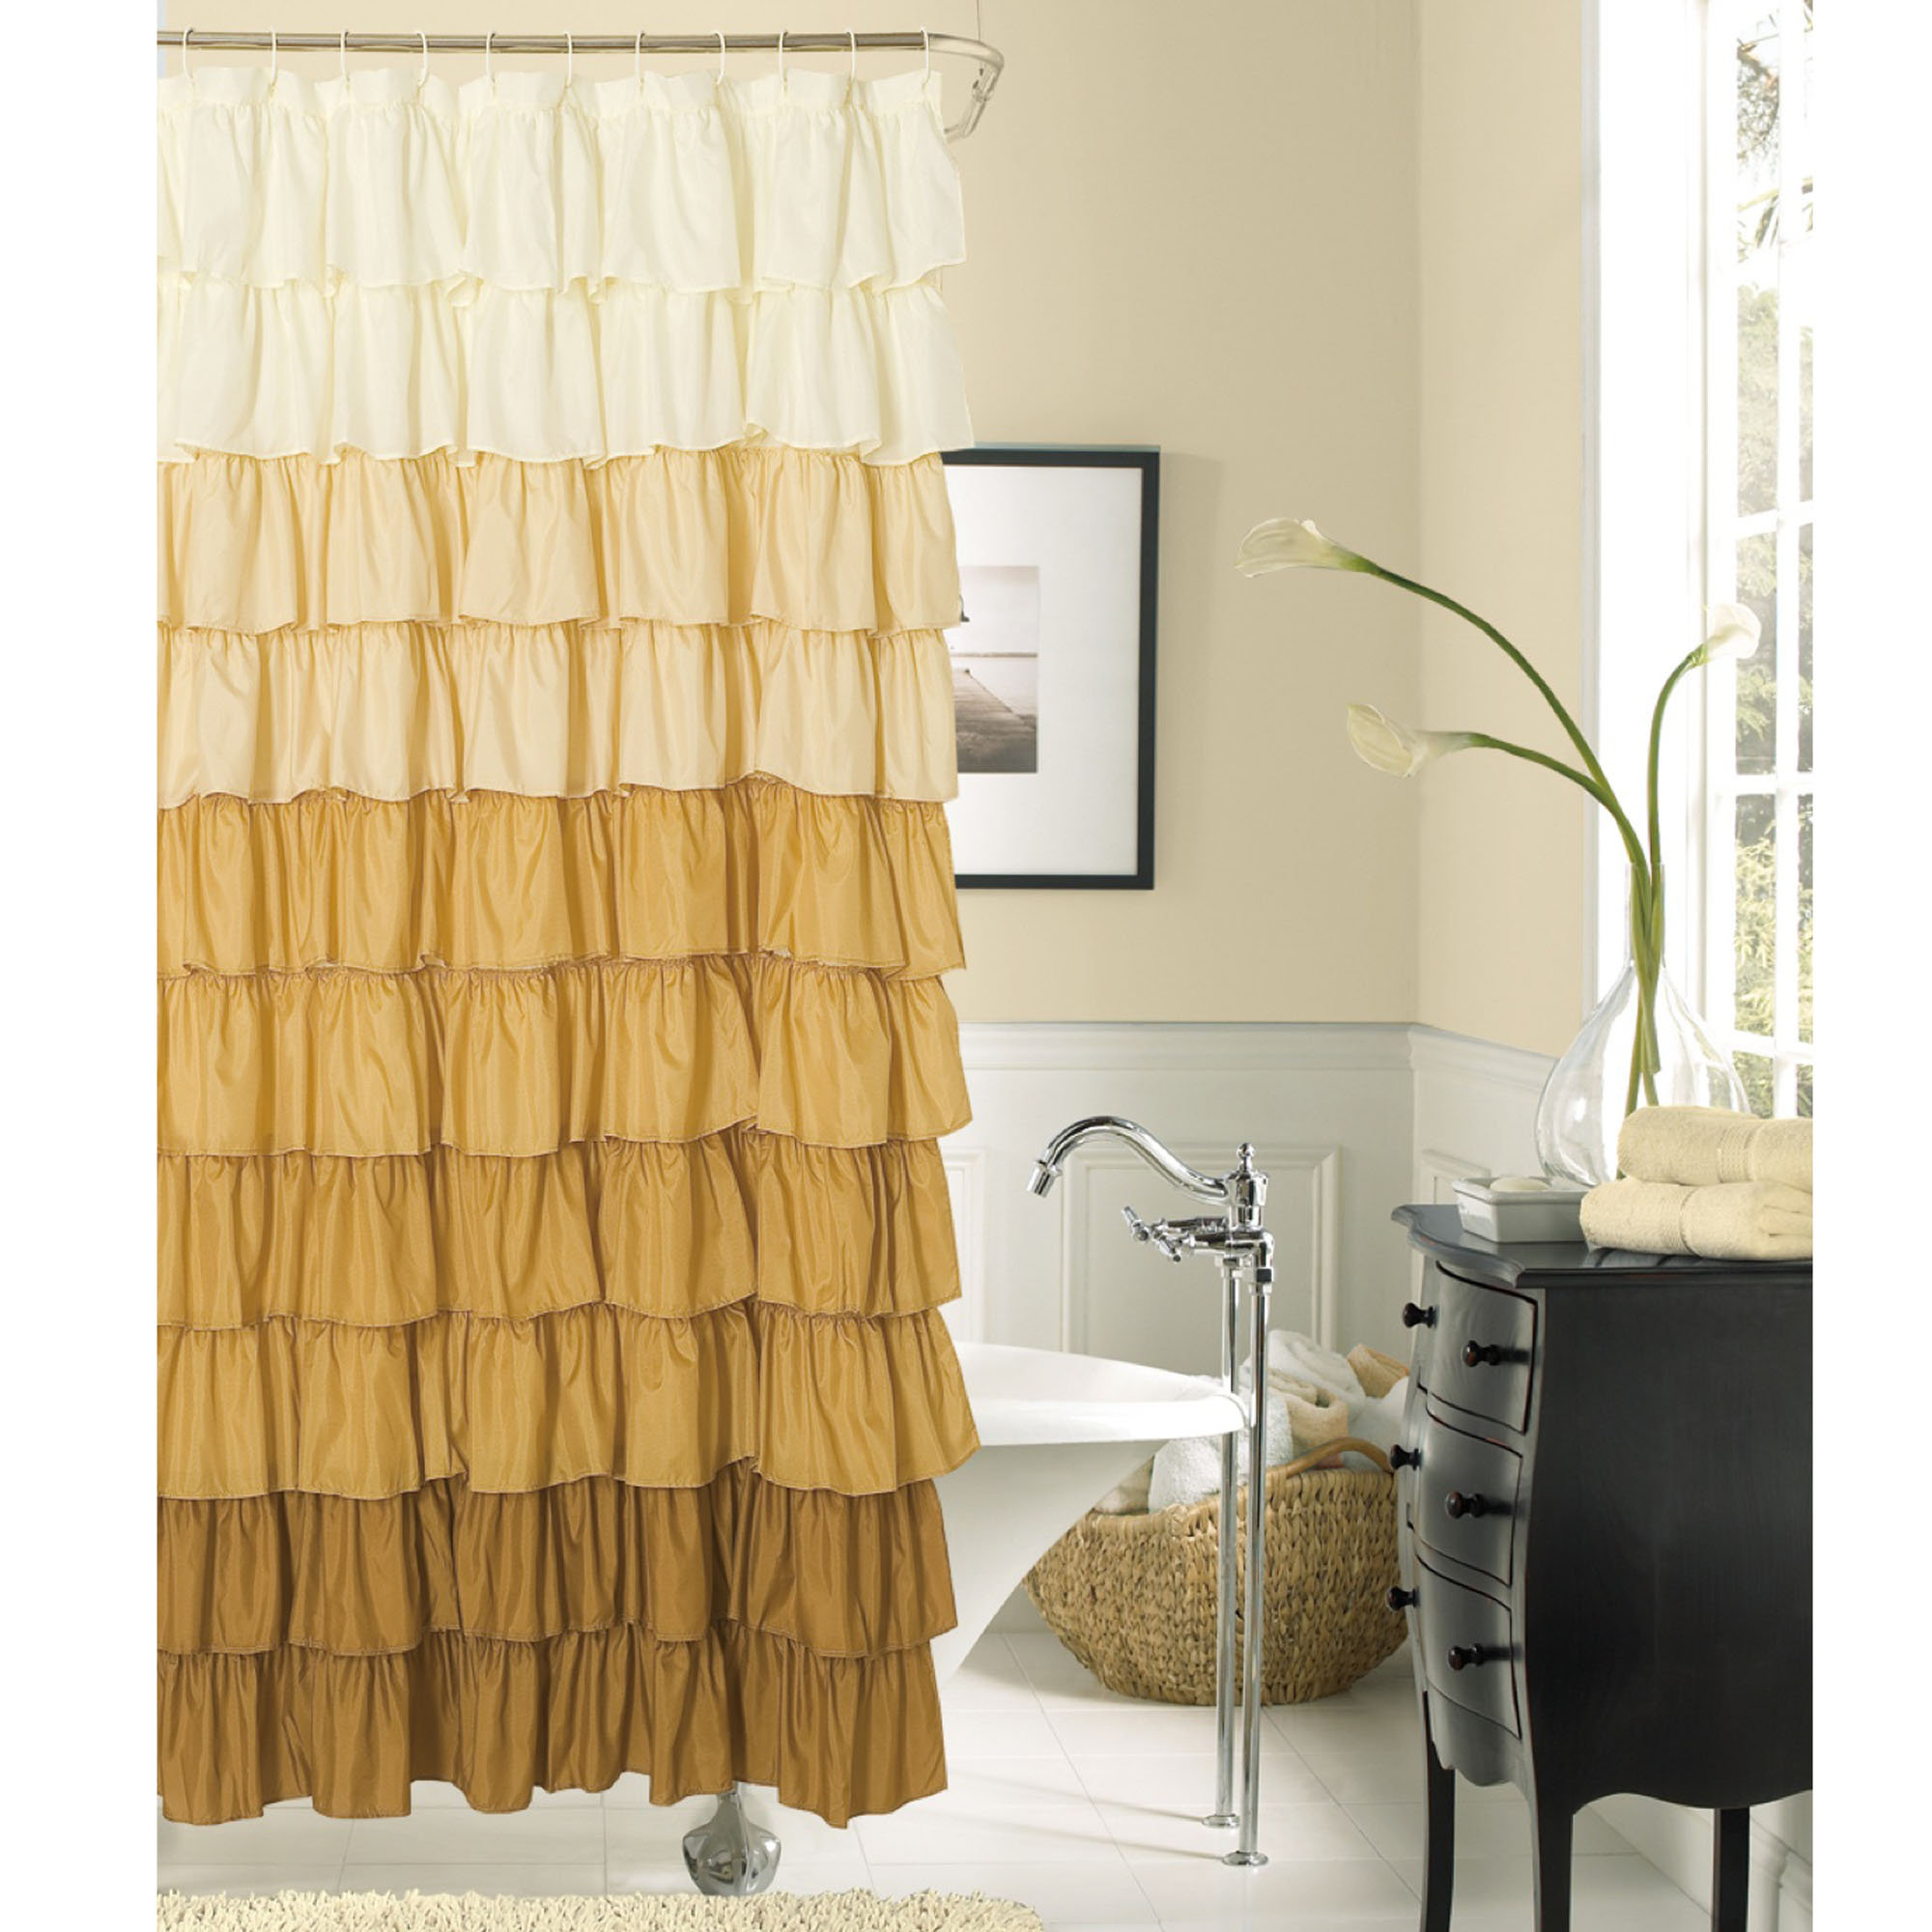 a-simple-tint-brown-and-cream-soft-fabric-tufted-shower-curtain-with-silver-stainless-steel-rod-and-white-twelve-ring-easily-slide-to-full-closure